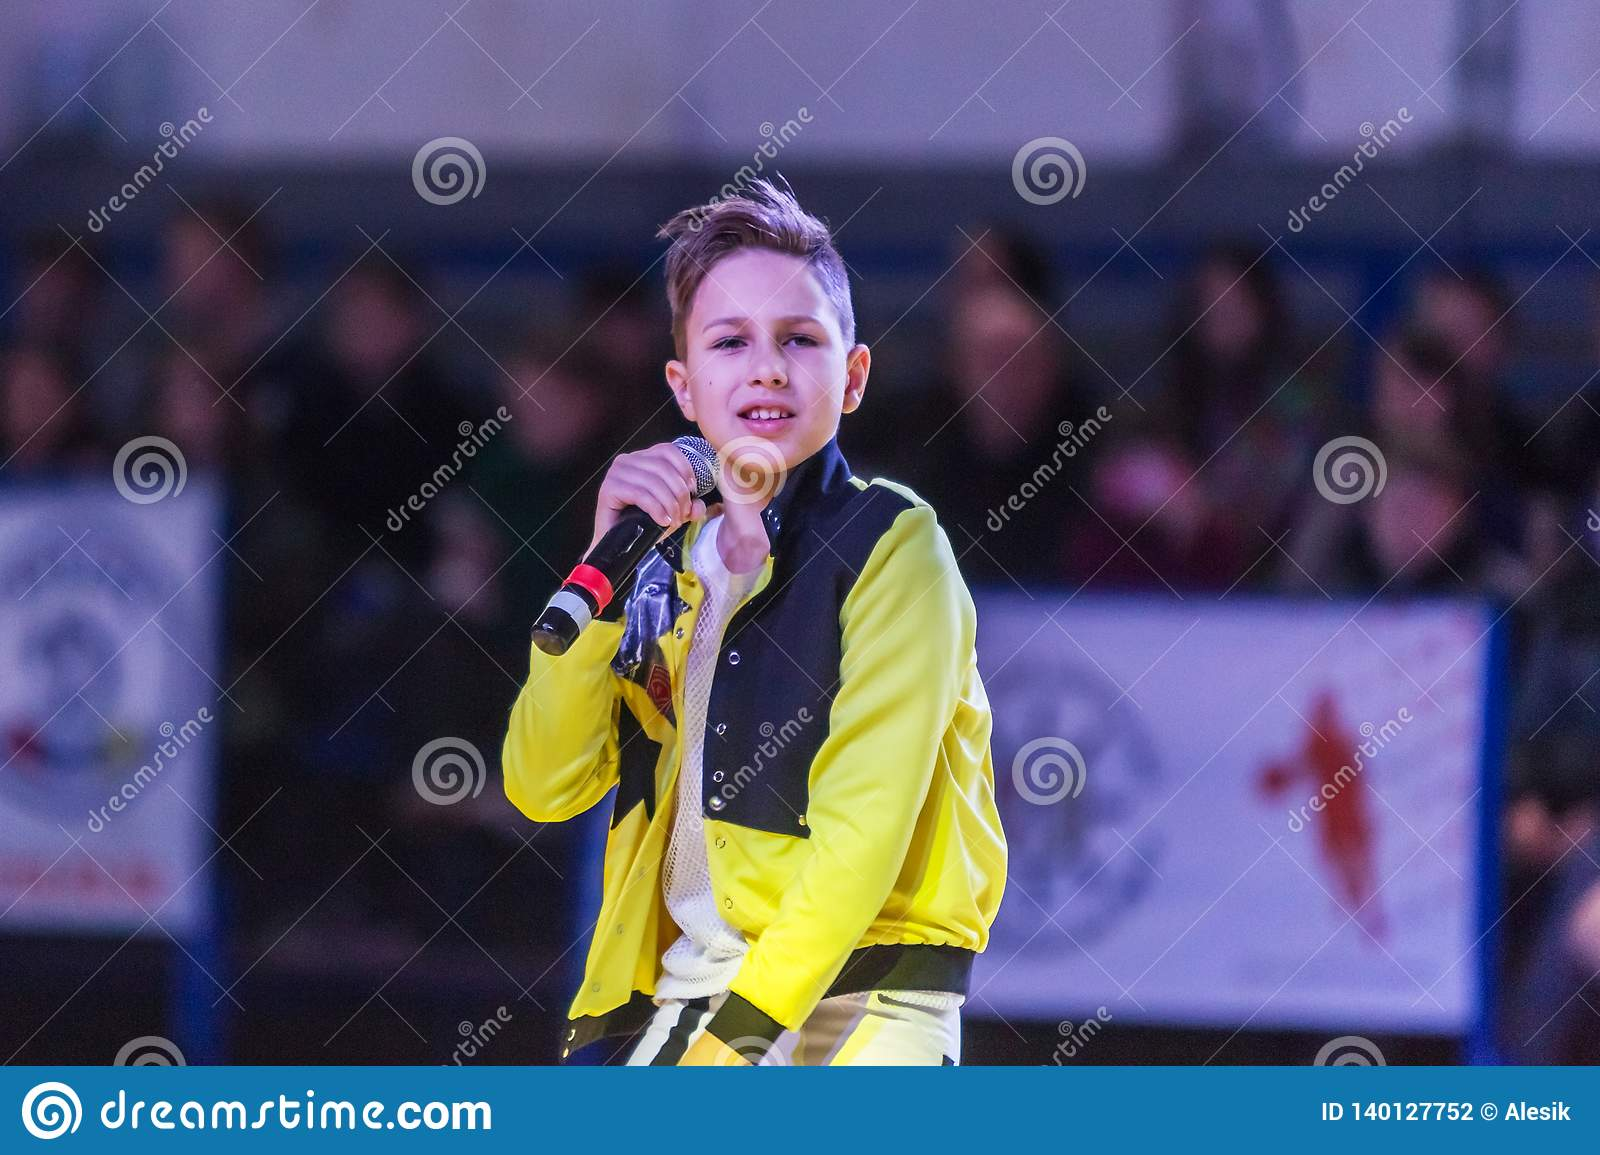 Odessa, Ukraine - February 16, 2019: Children`s music groups singing and dancing on basketball court during a commercial break.